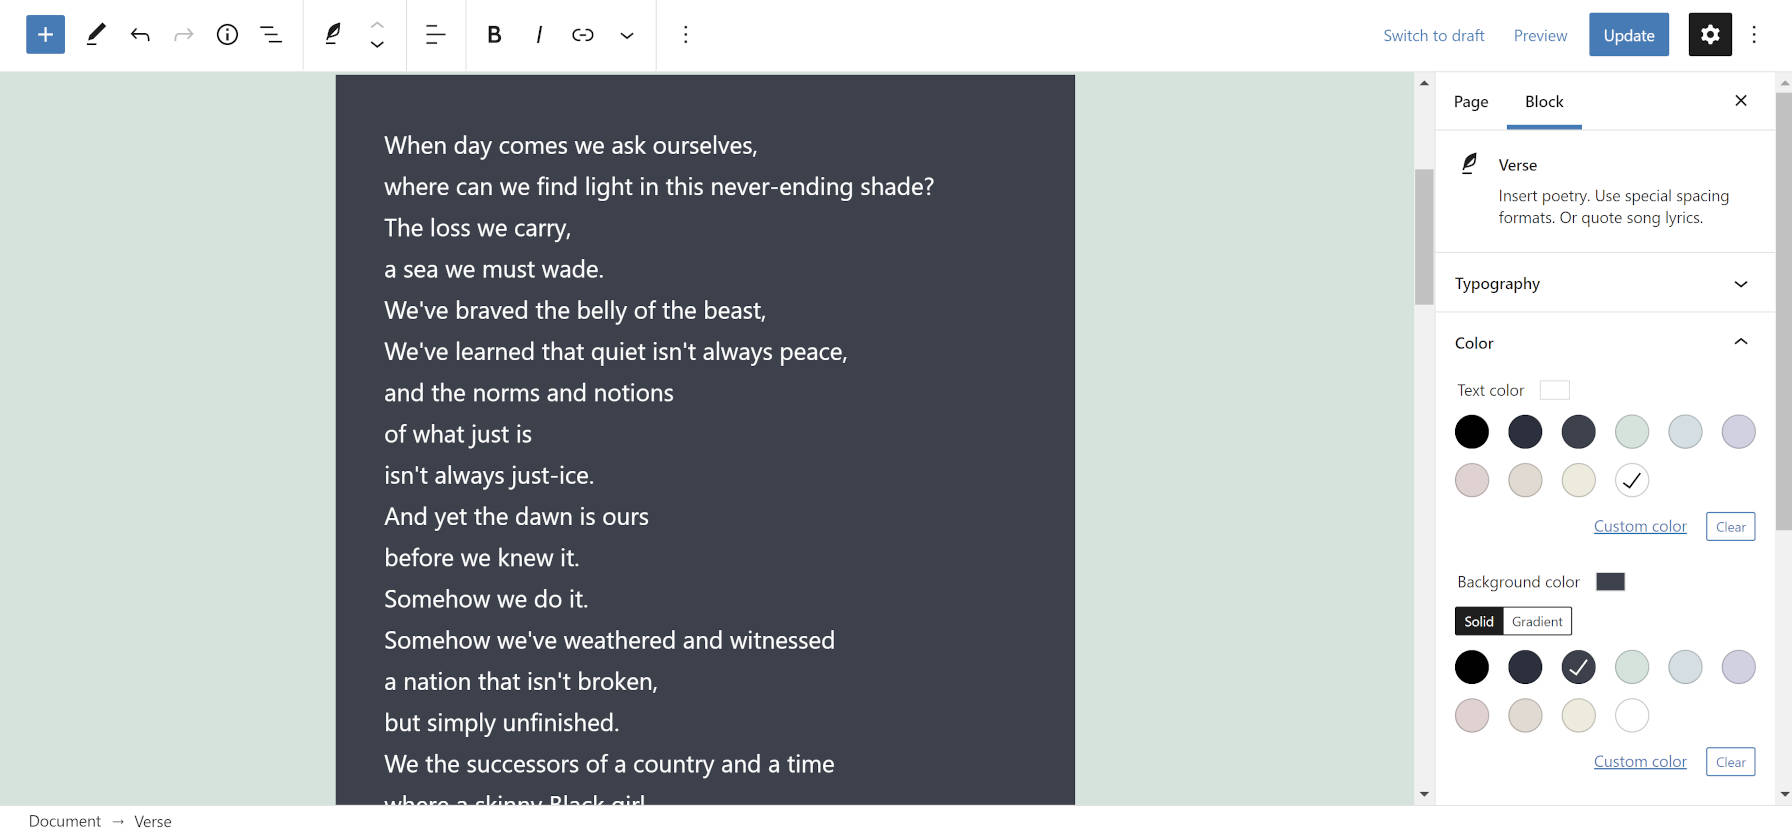 Color options for the Verse block in the WordPress editor.